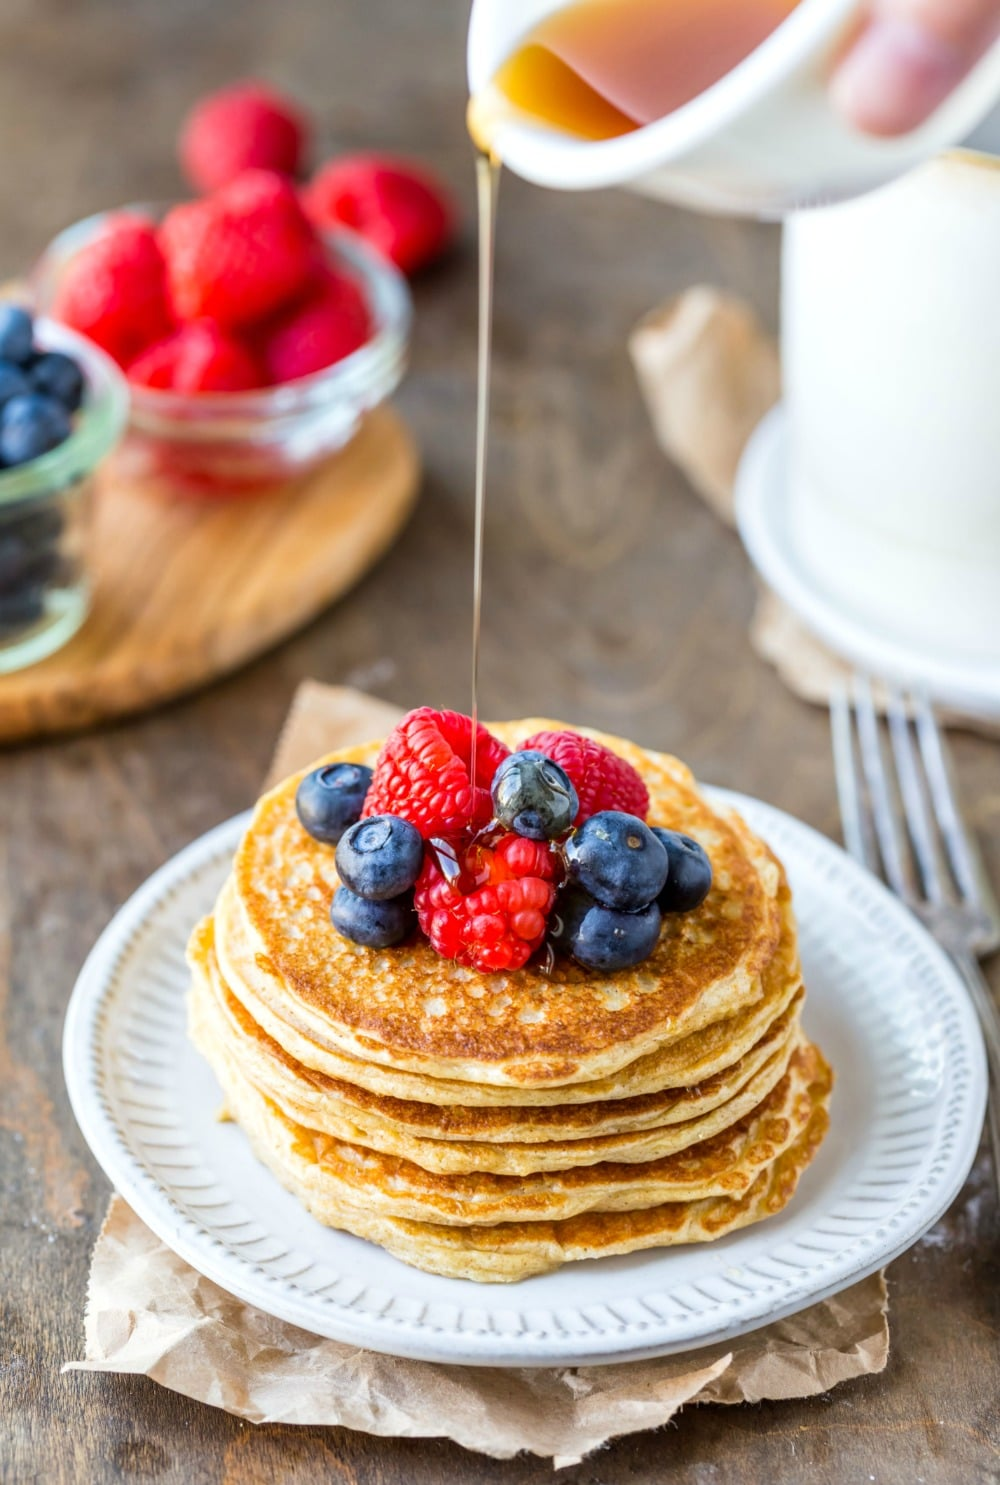 Syrup pouring onto stack of cottage cheese pancakes